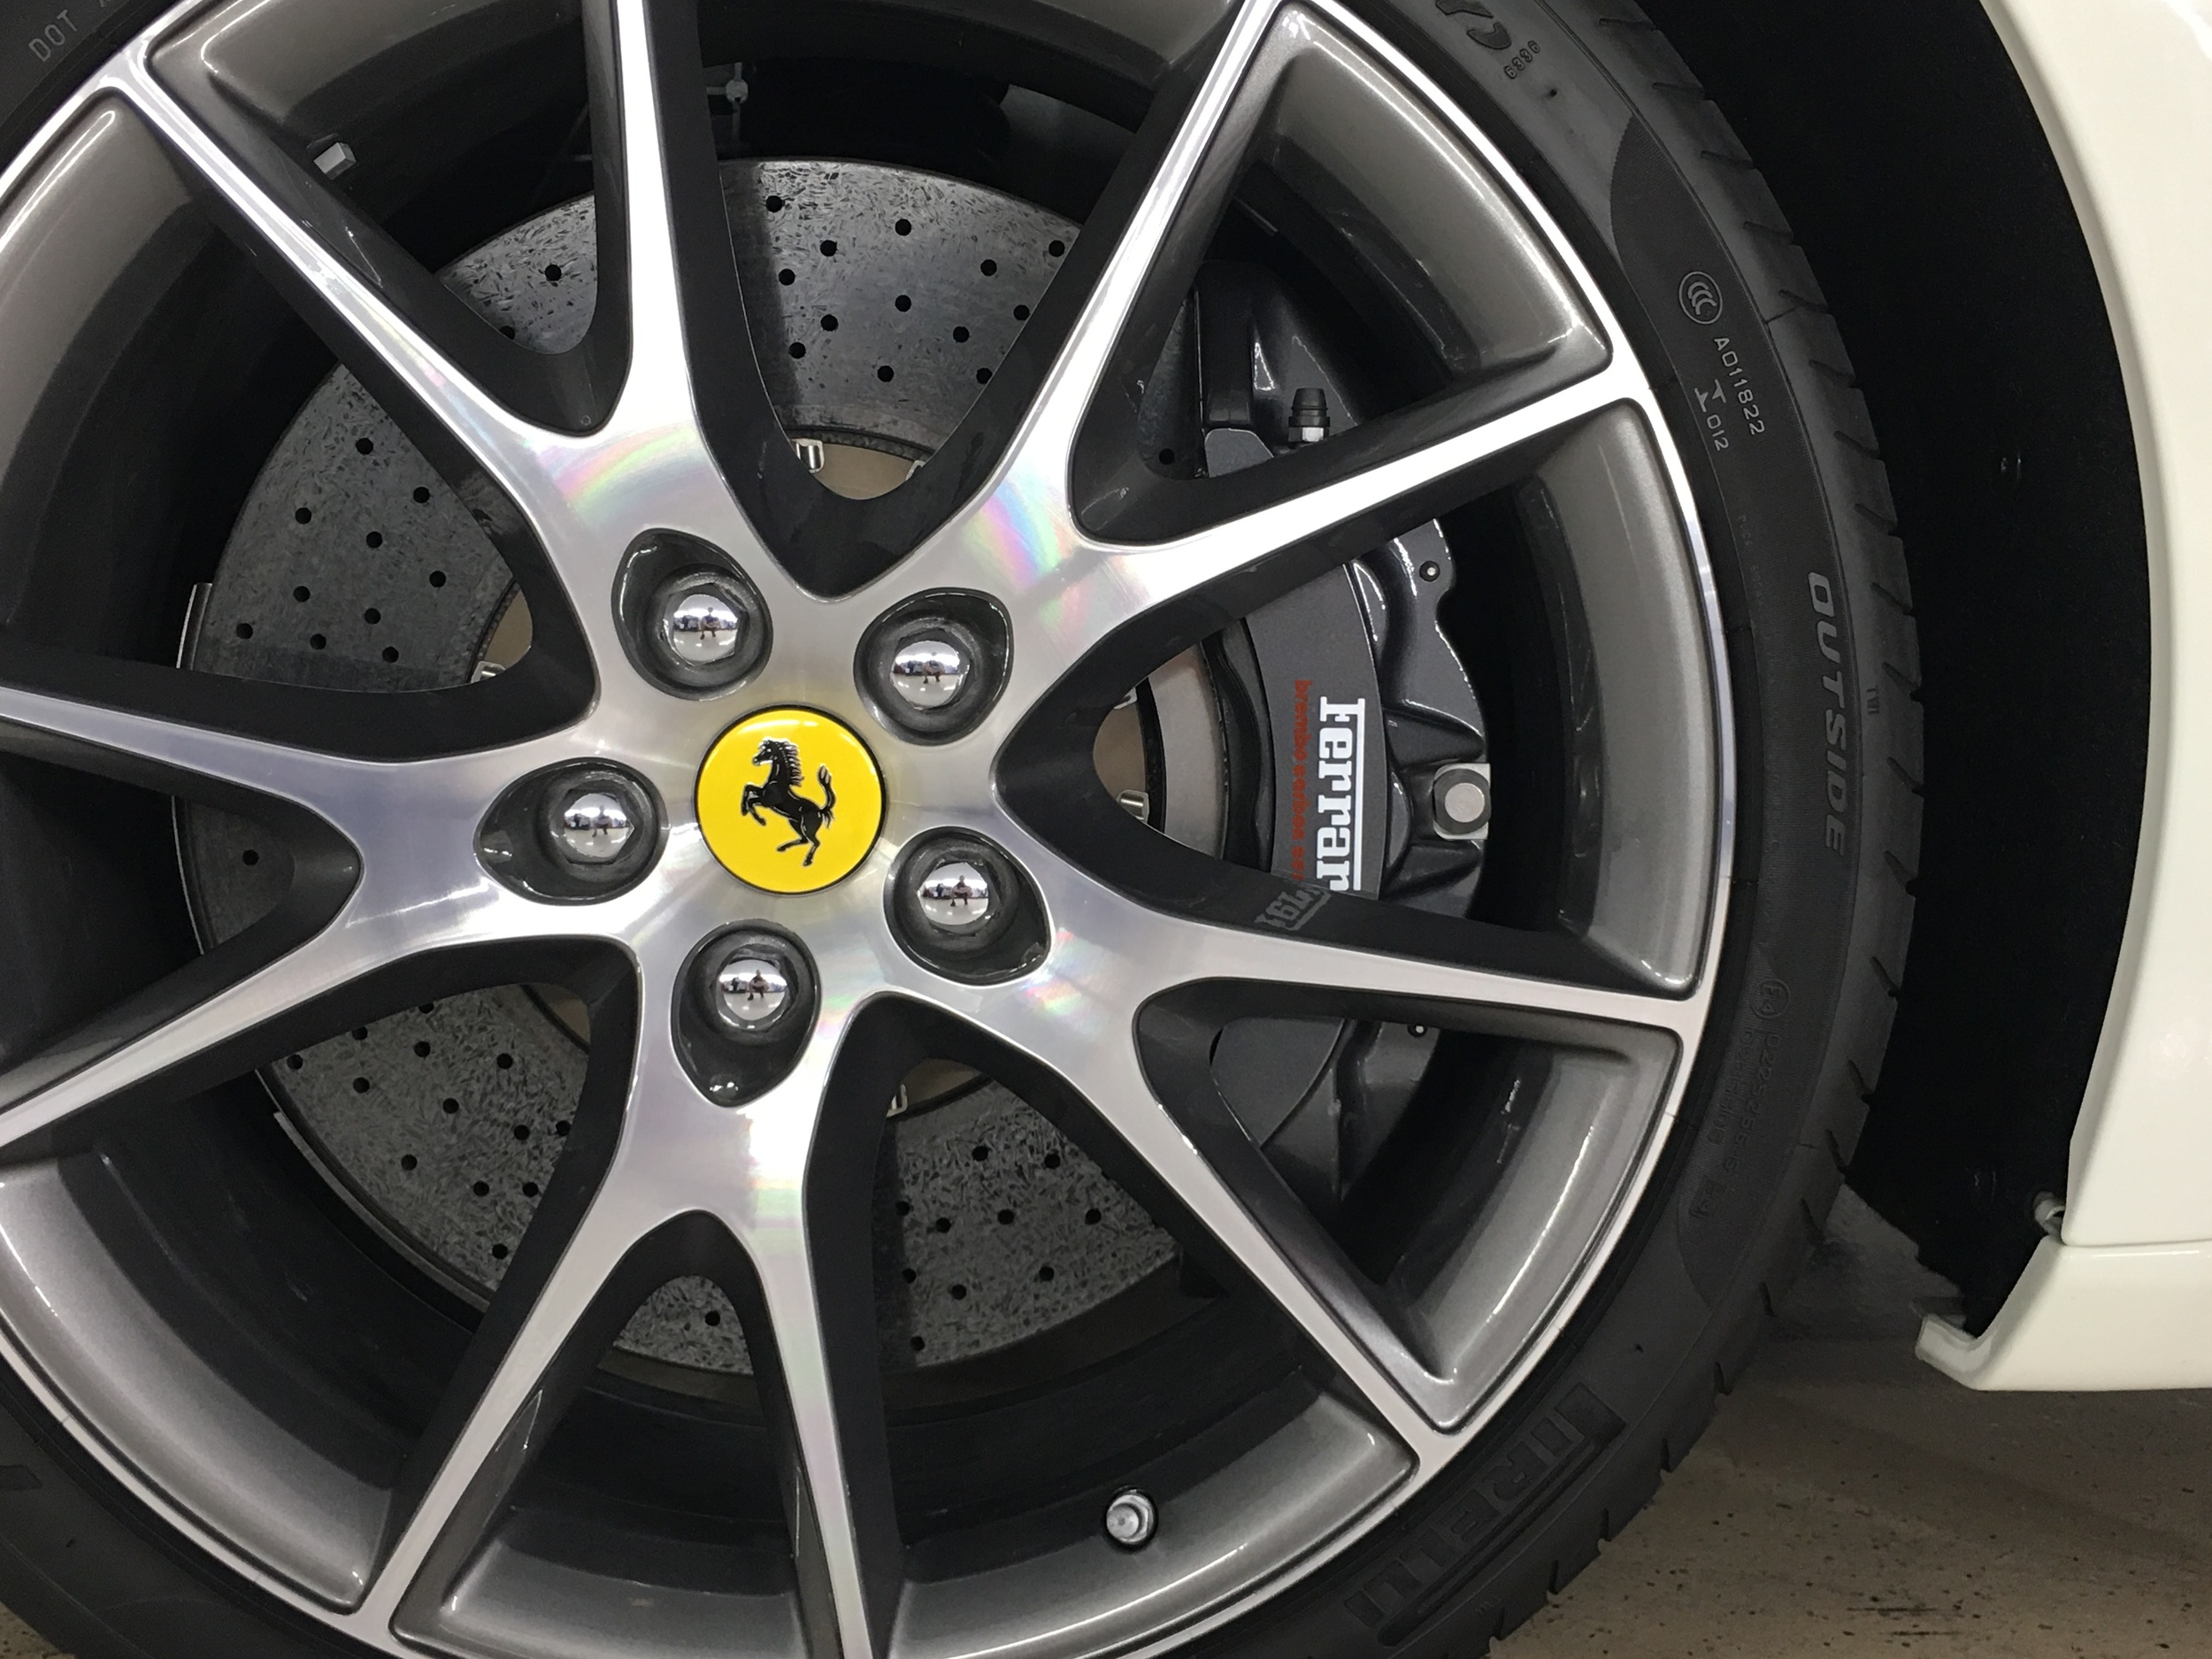 Ceramic Pro Wheel & Caliper applied to all 4 wheel faces. This prevents brake dust build-up, and makes for easy cleaning!